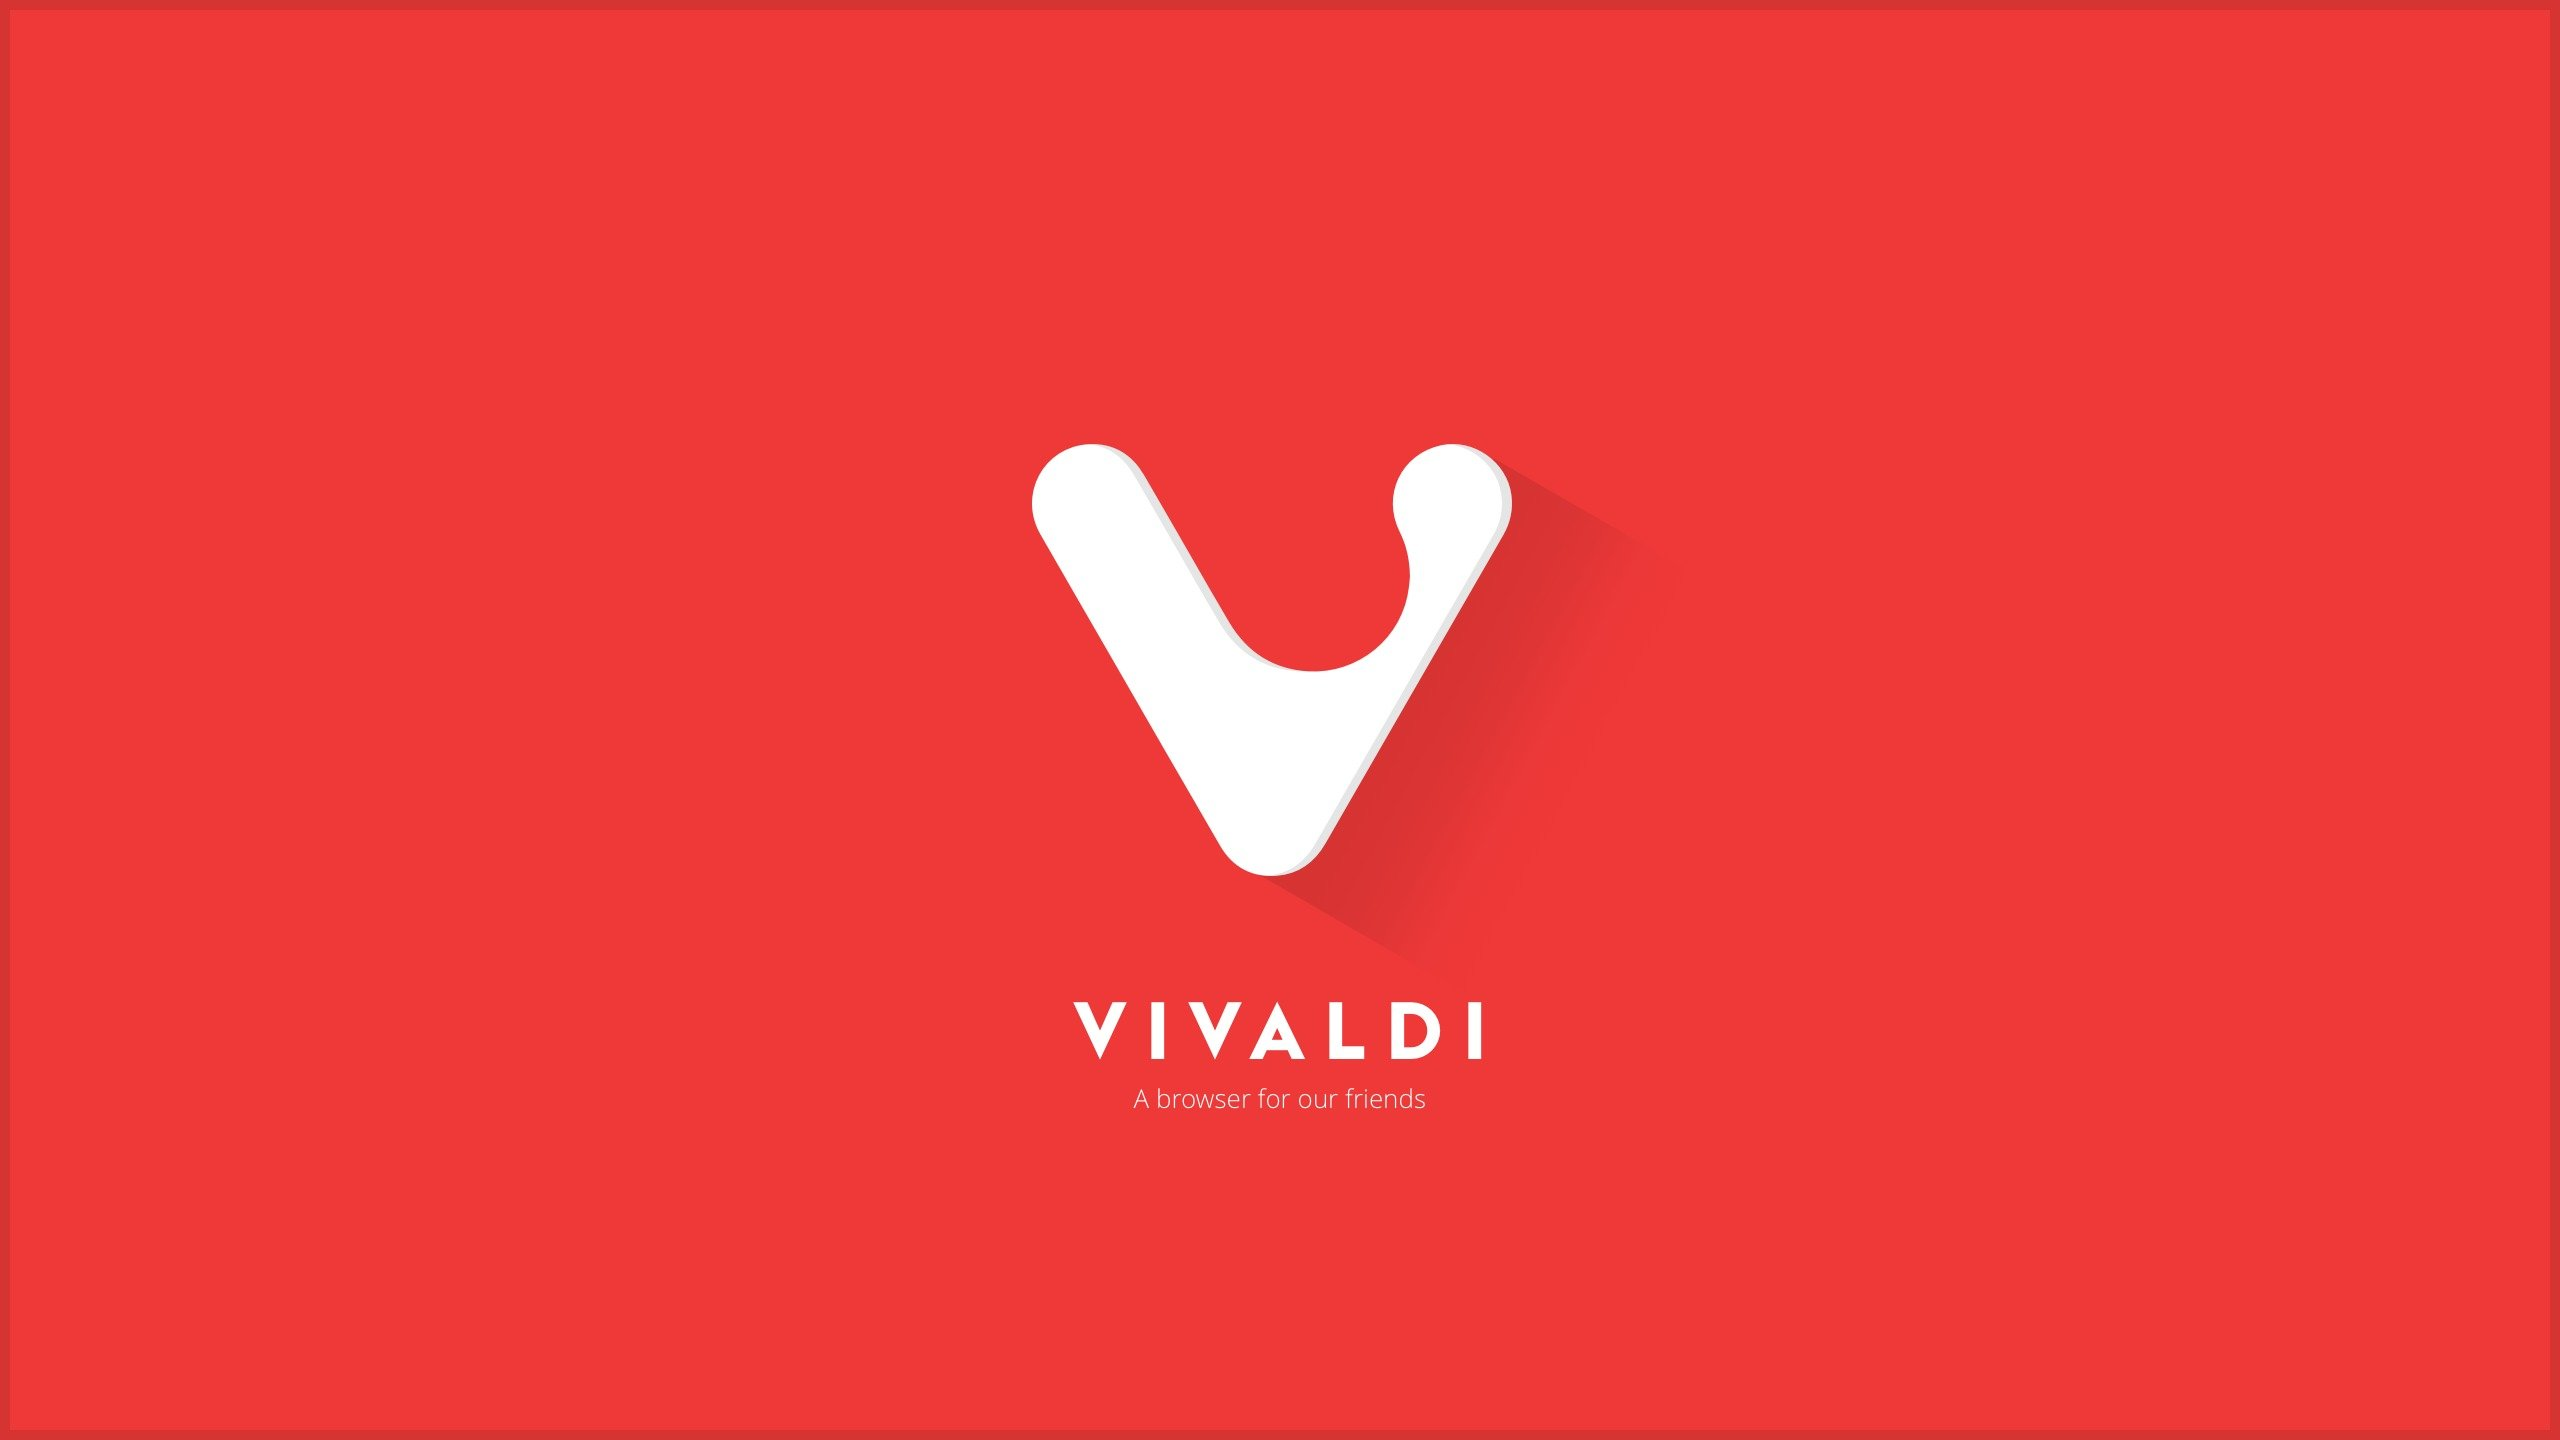 vivaldi_browser